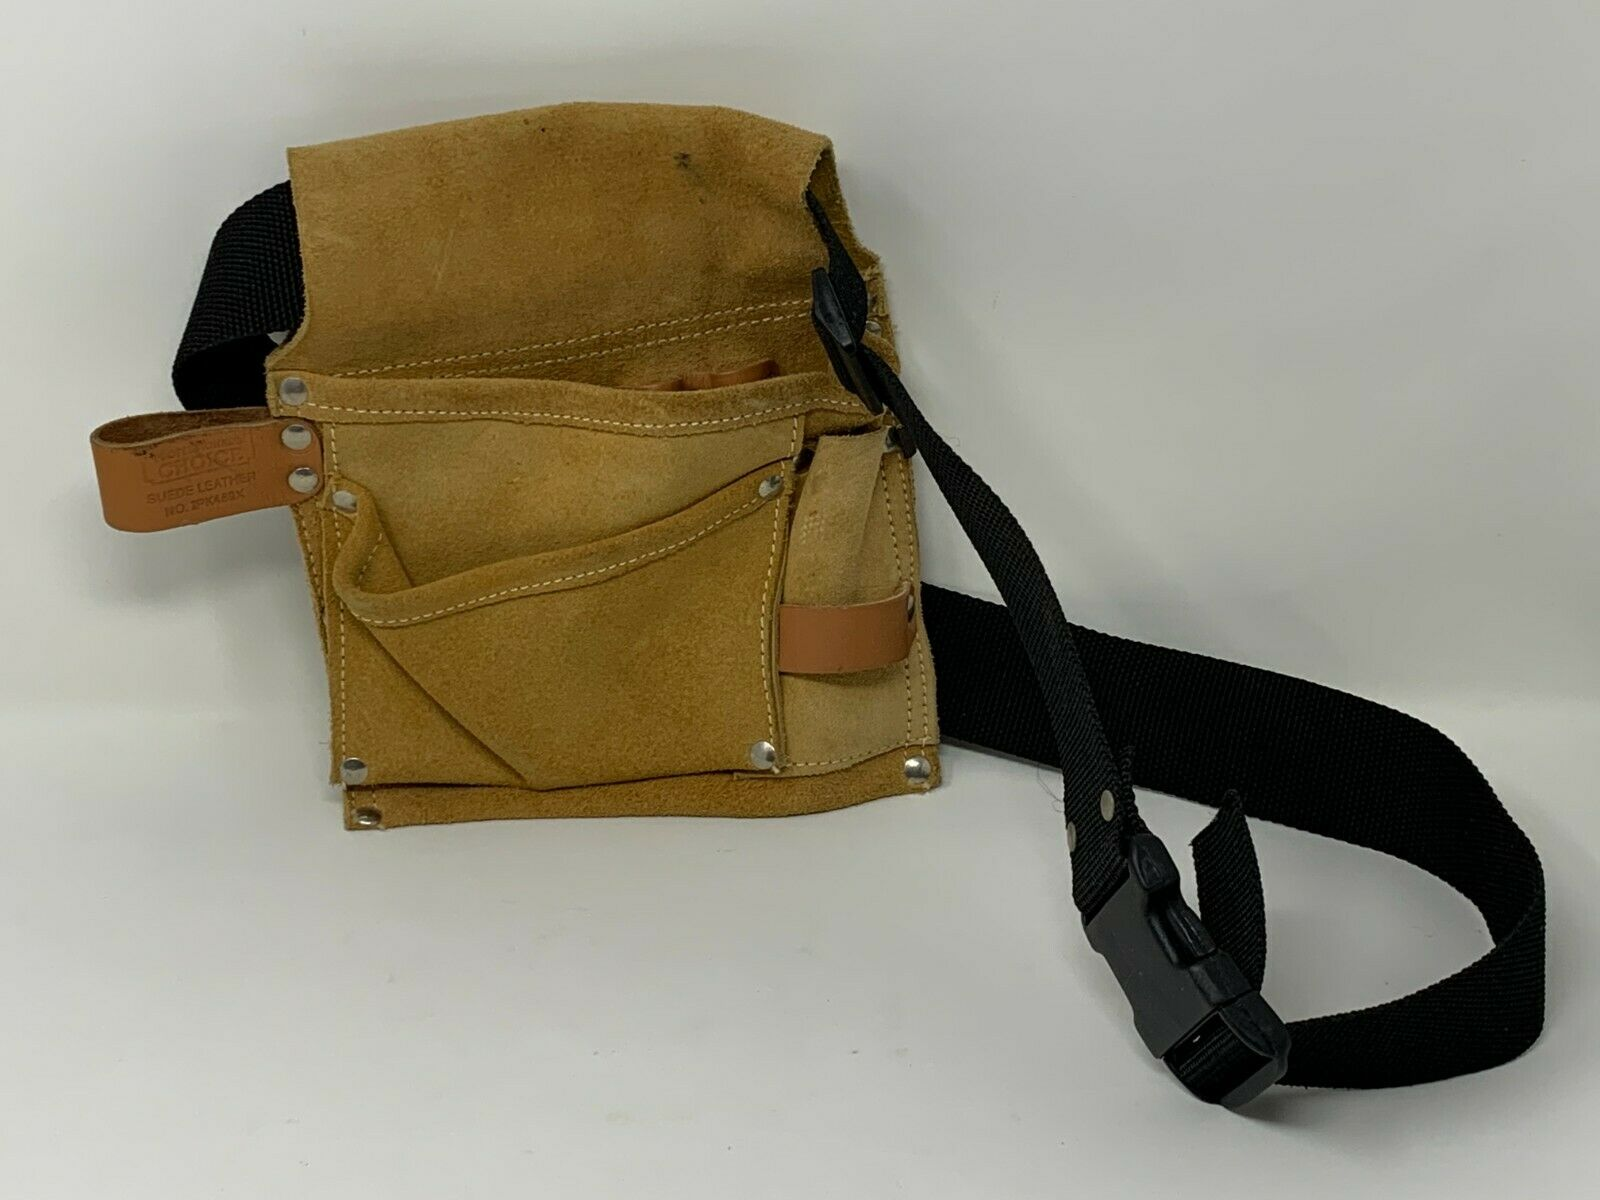 Professional's Choice Suede Leather Tool Bag Belt No. IPK489X